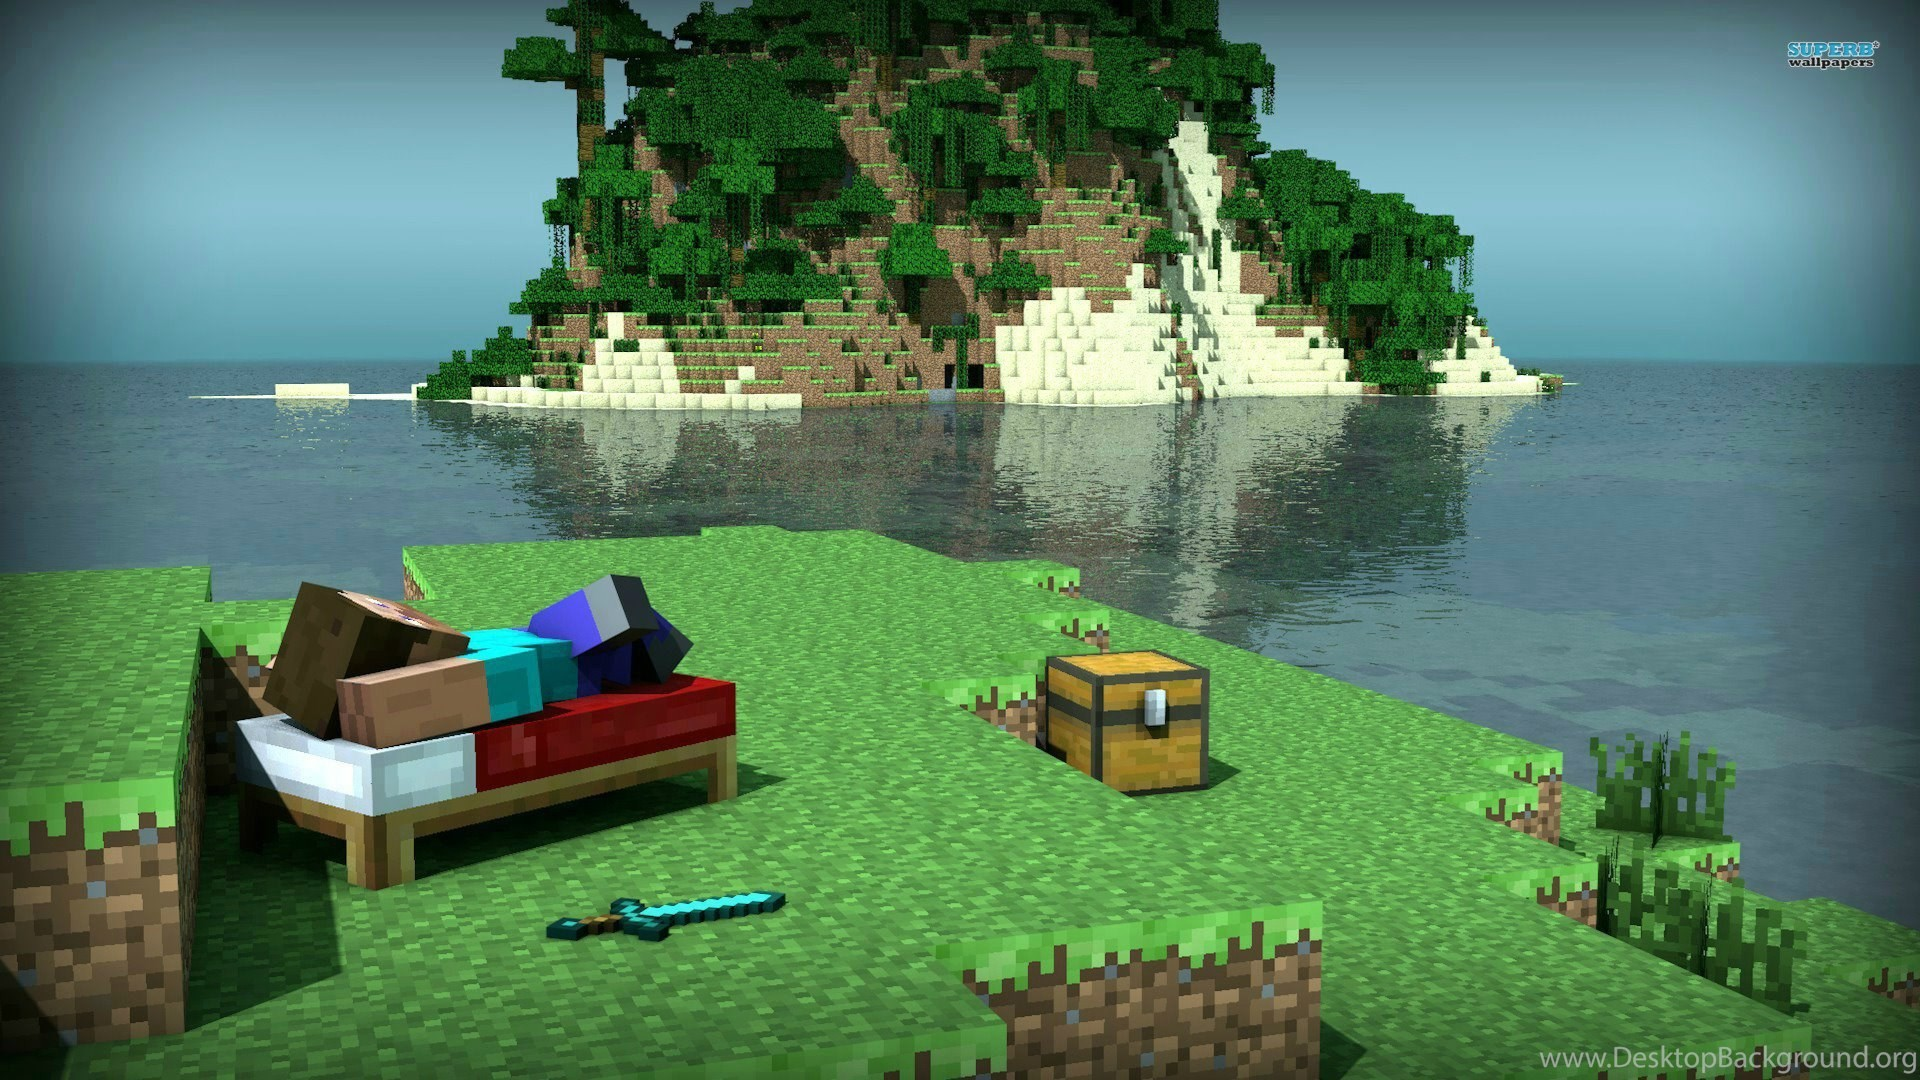 1920x1080 Awesome Minecraft Wallpapers Widescreen